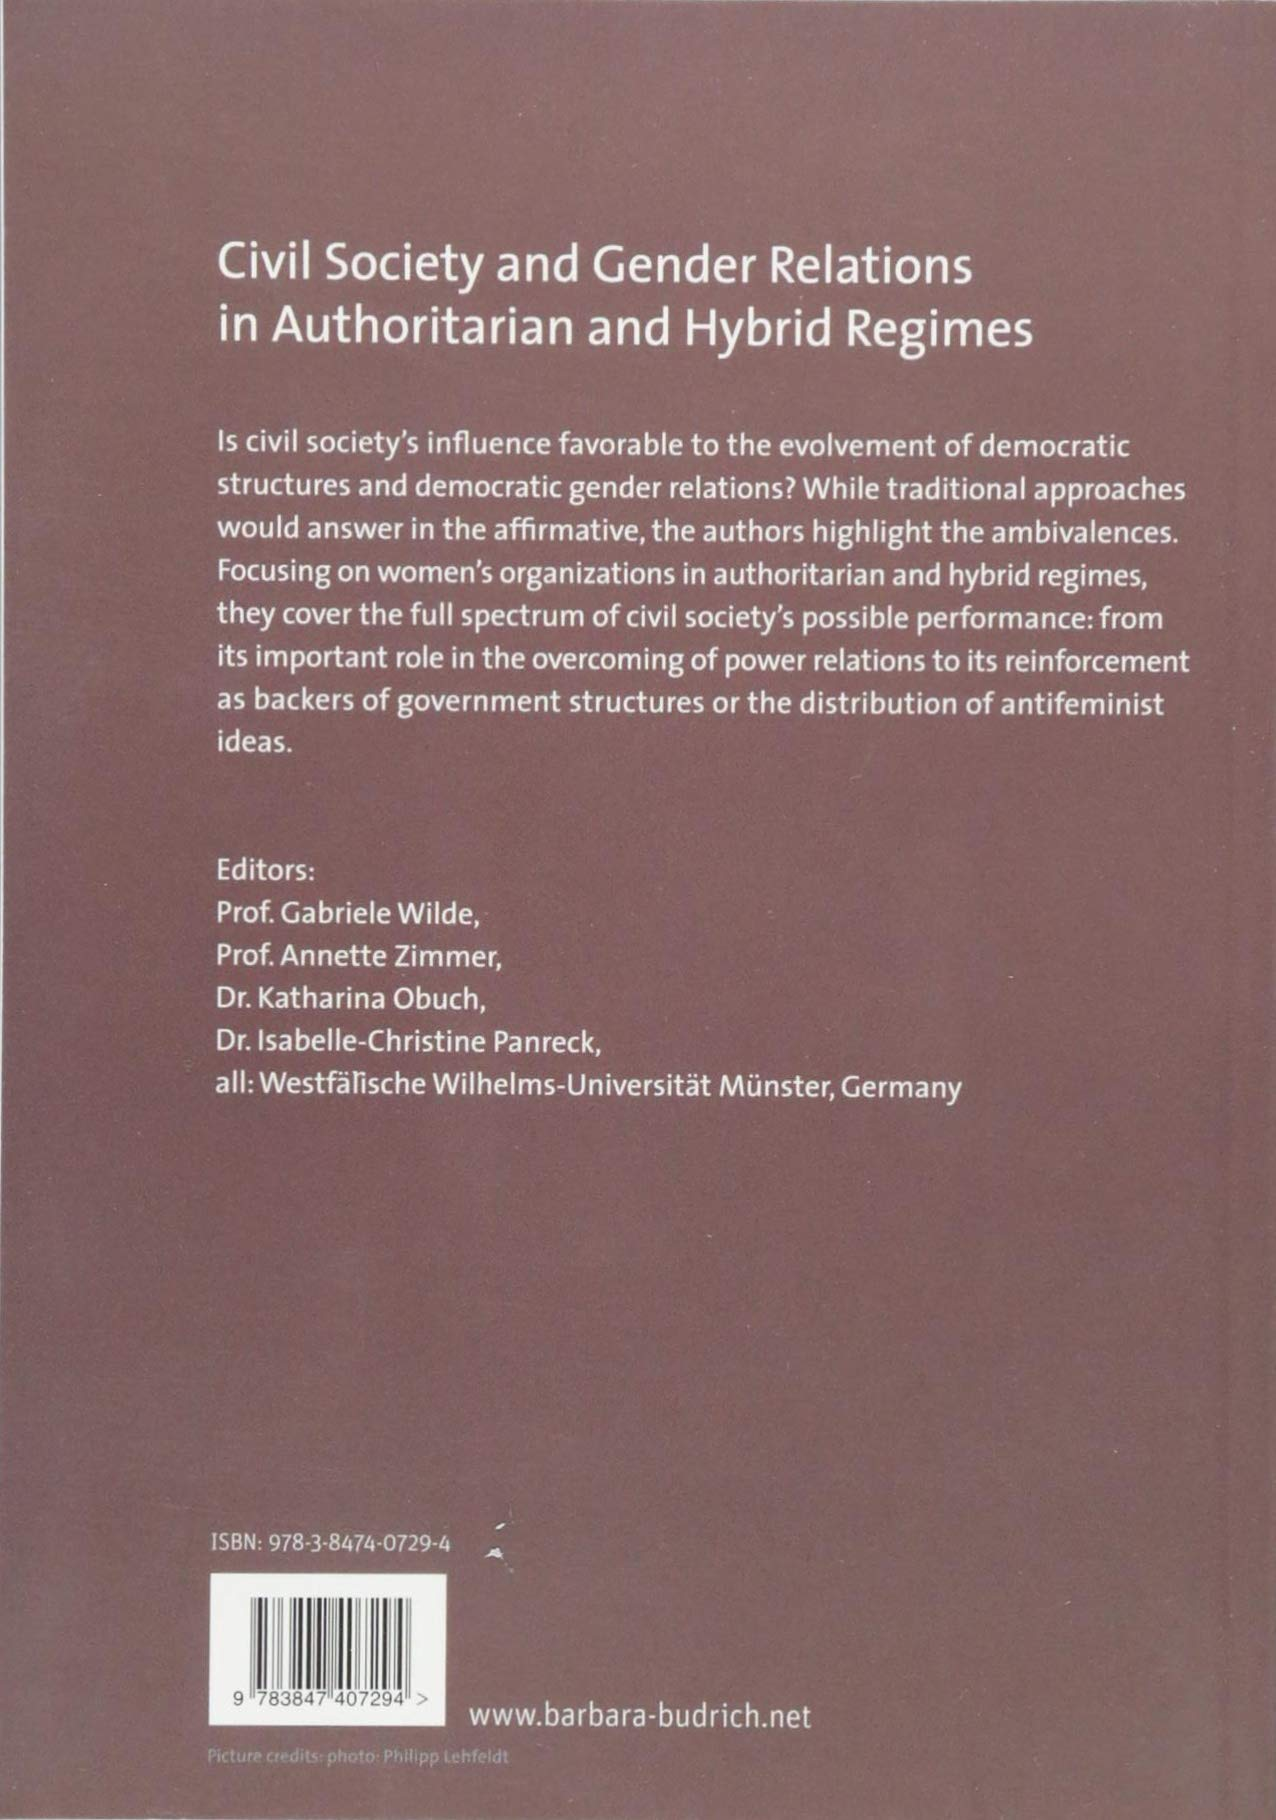 Amazon.com: Civil Society and Gender Relations in Authoritarian and Hybrid  Regimes: New Theoretical Approaches and Empirical Case Studies  (9783847407294): ...